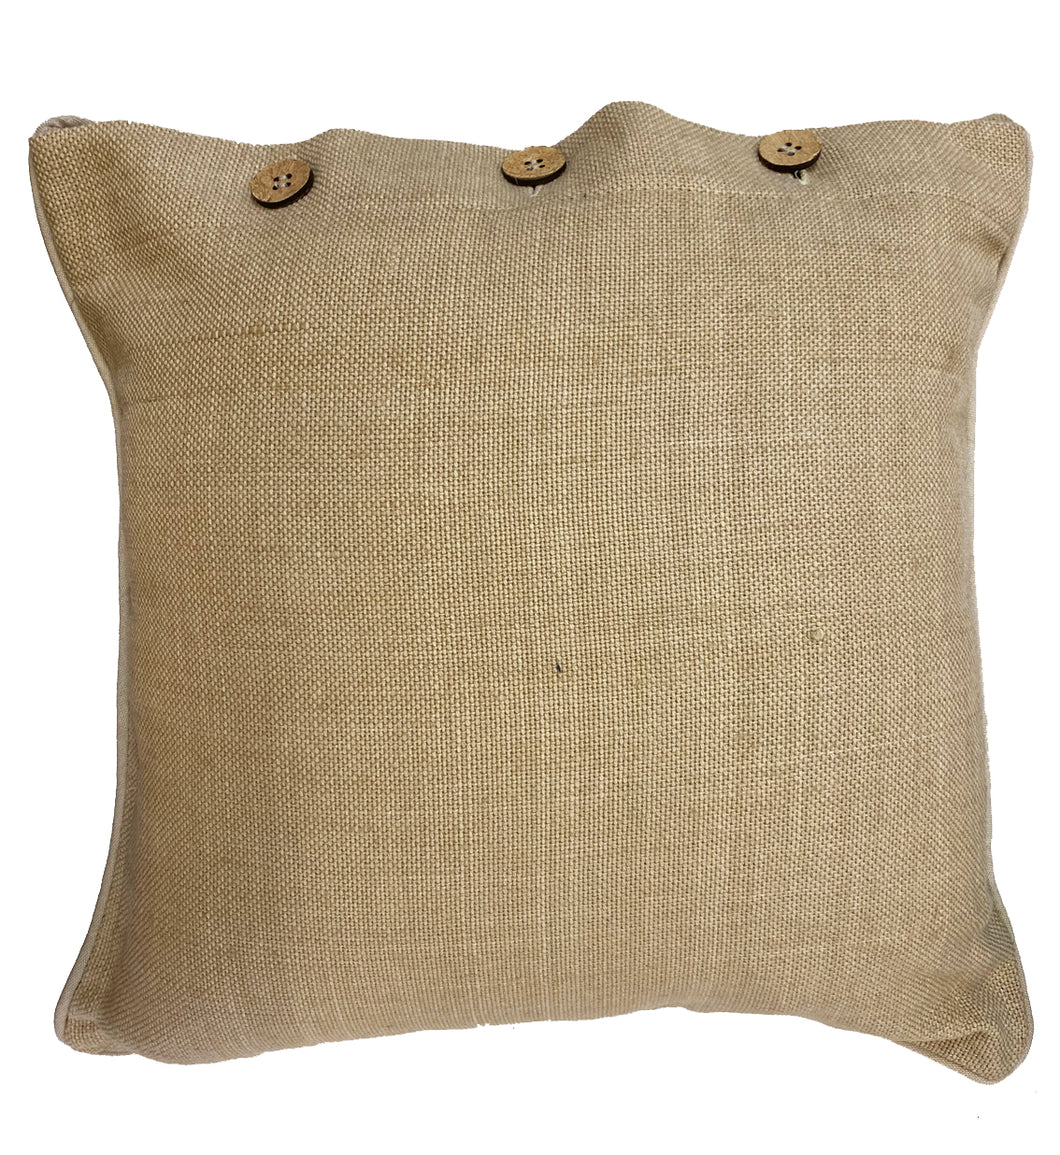 Jute Natural Cushion Cover